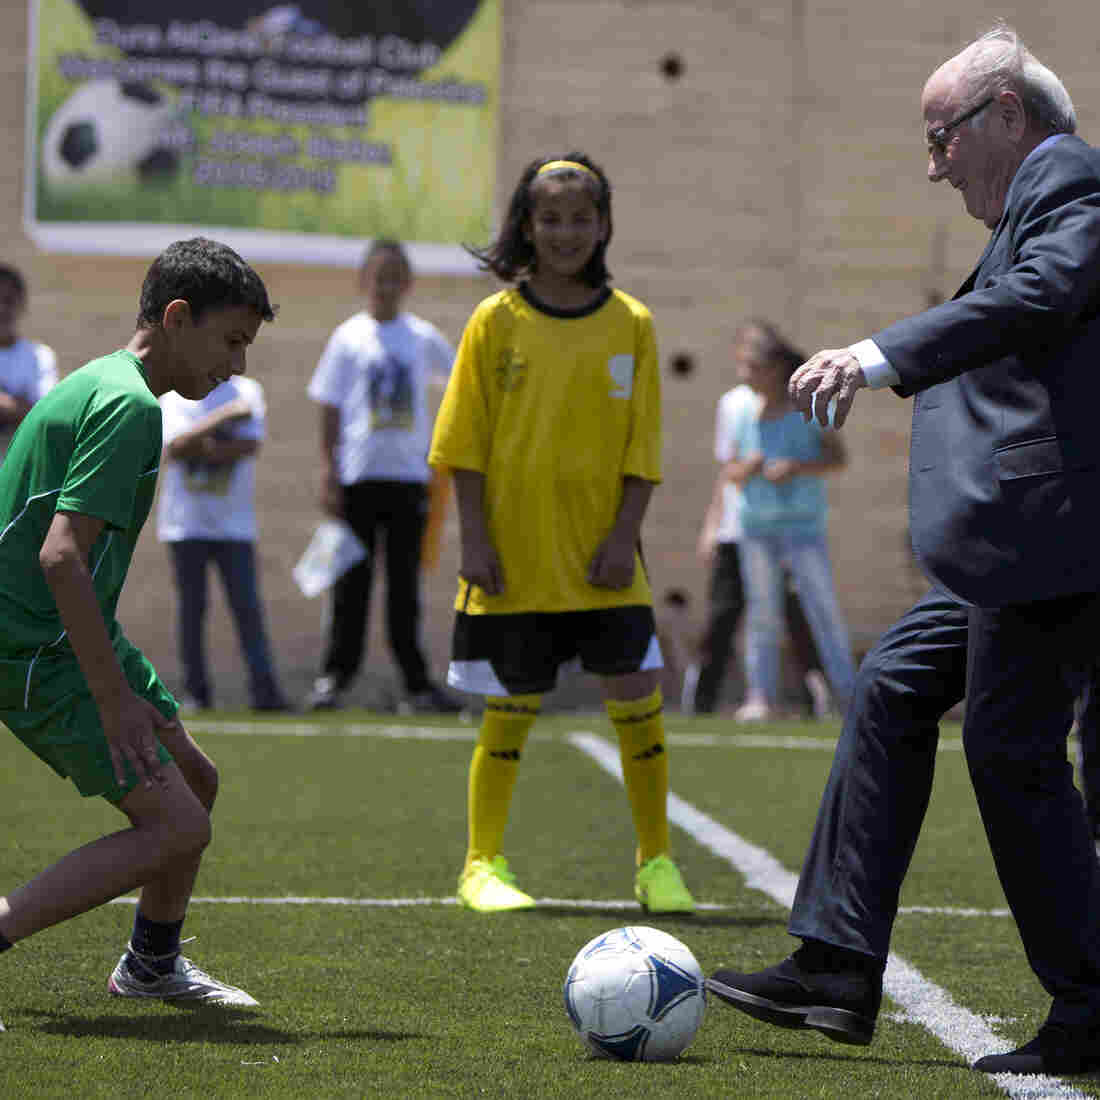 For Israel, Soccer Becomes A Geopolitical Football